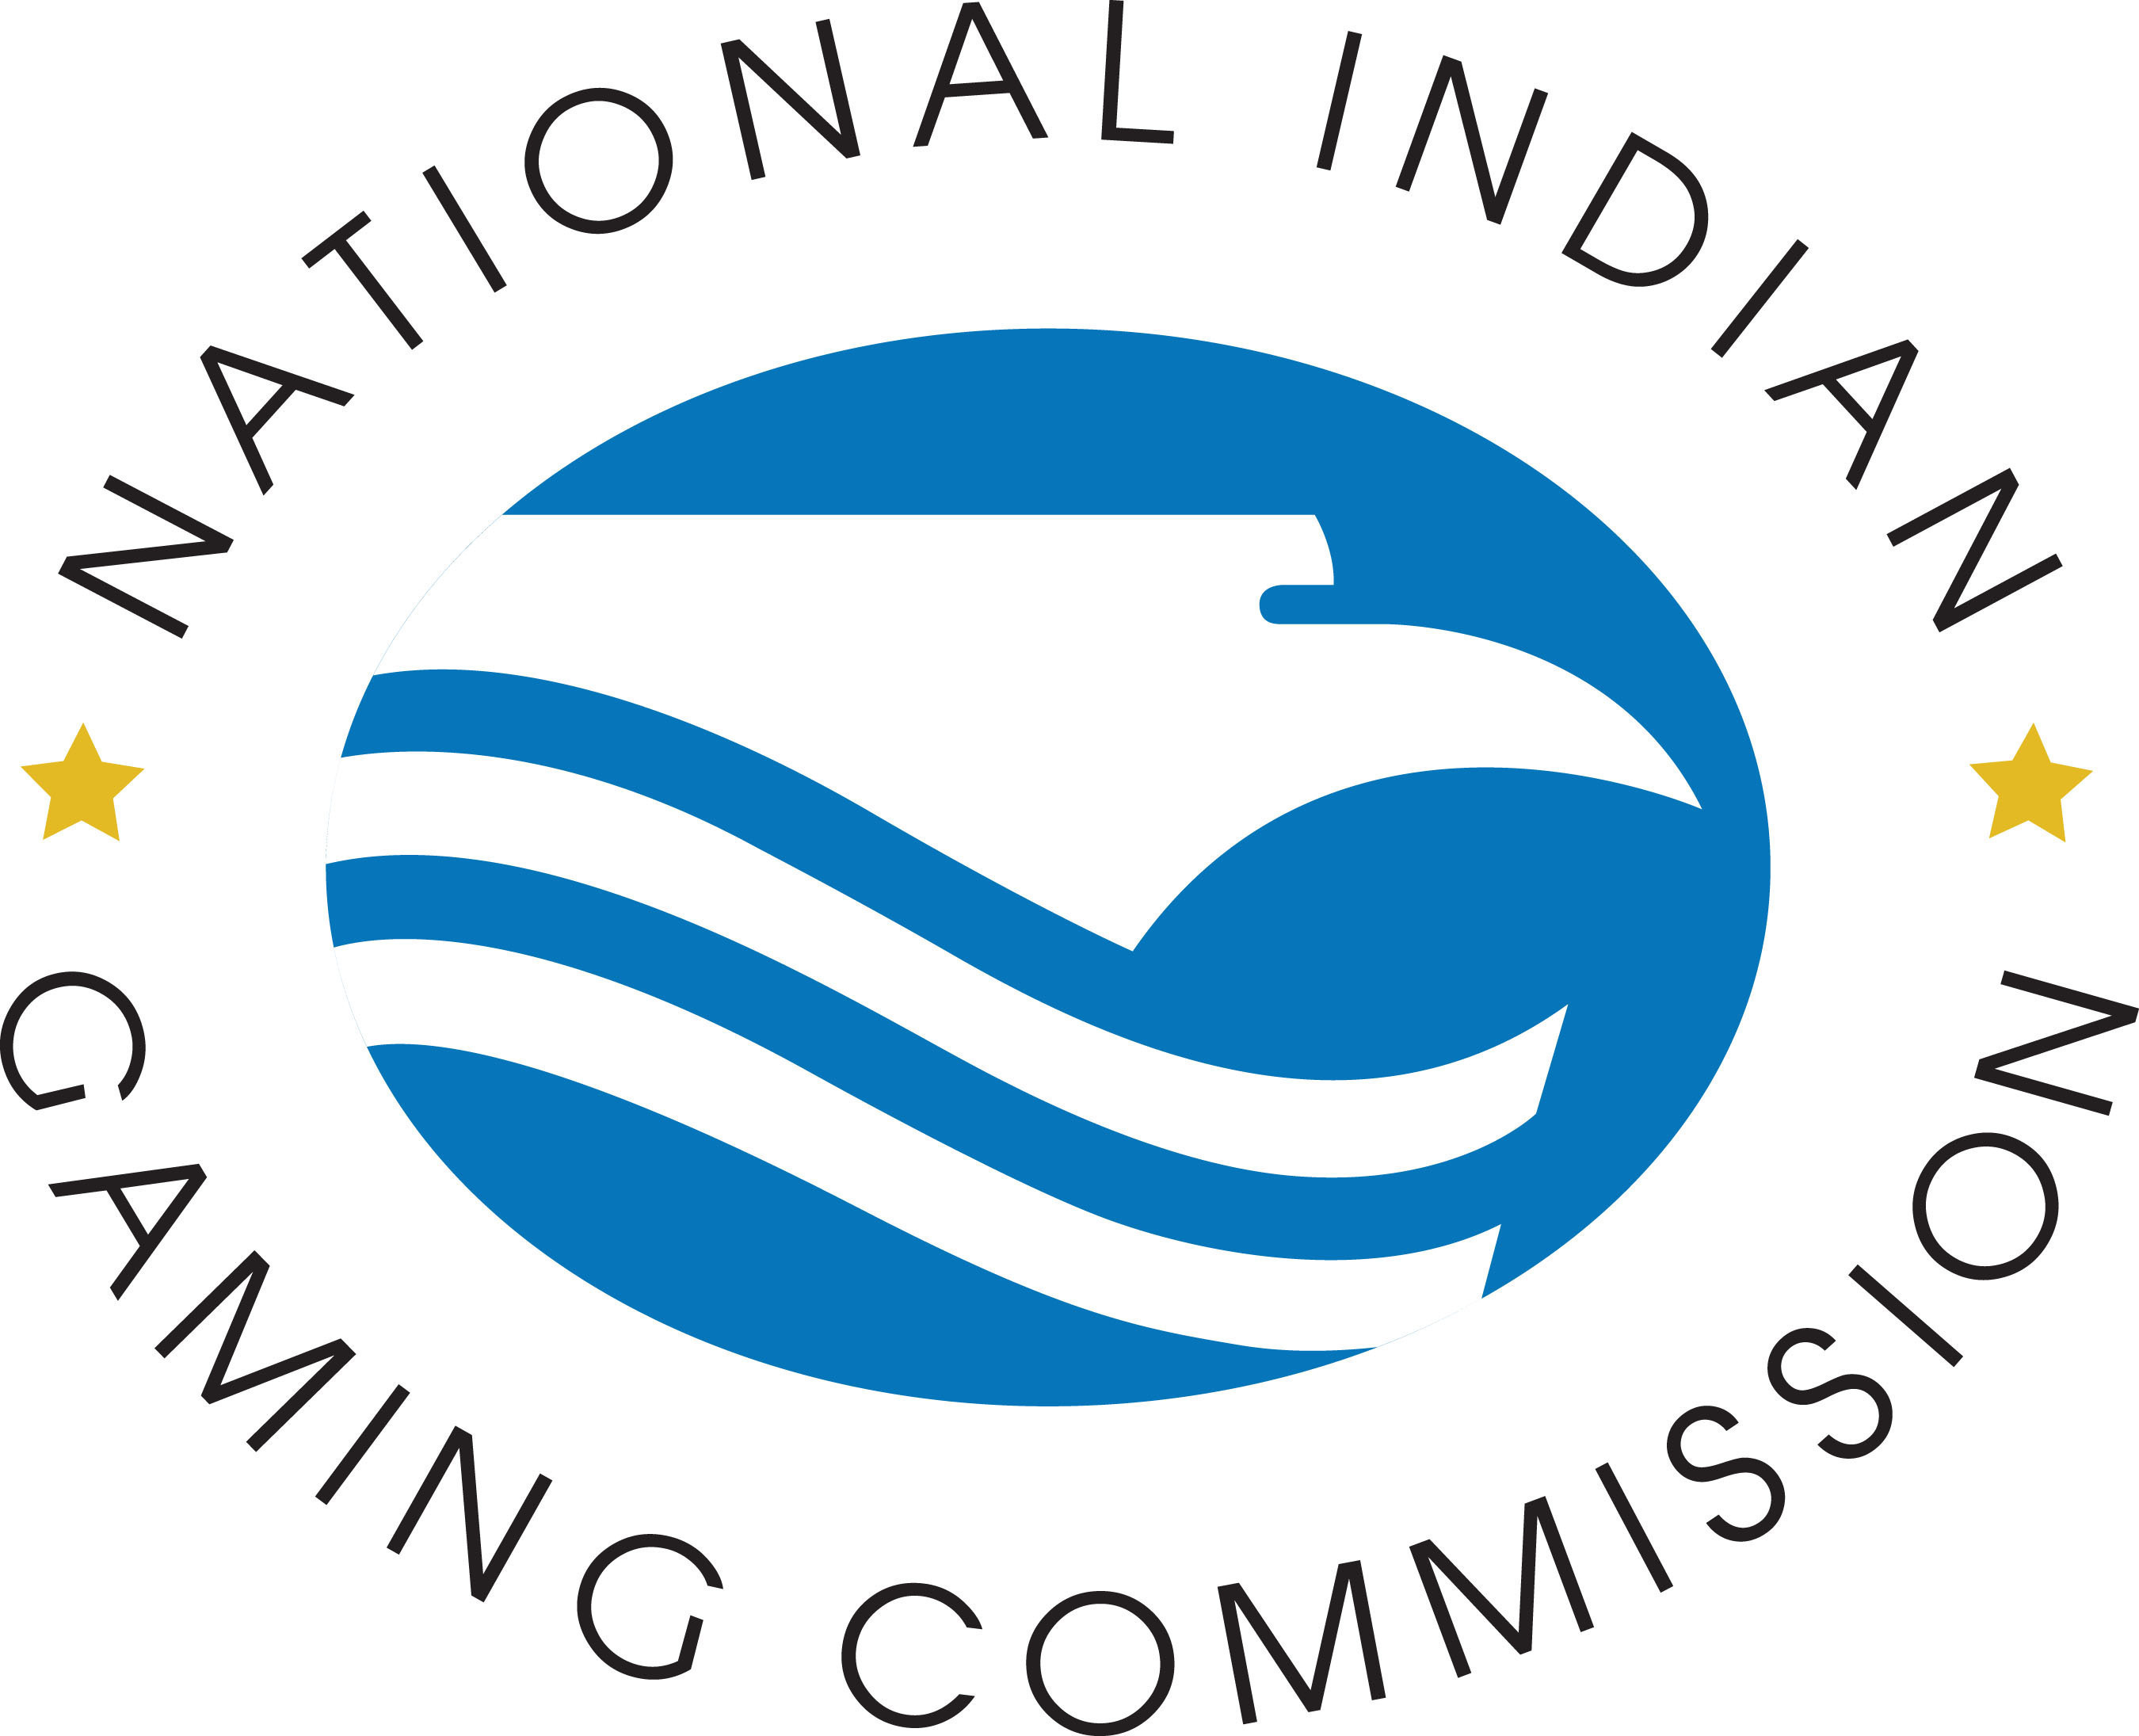 National Indian Gaming Commission